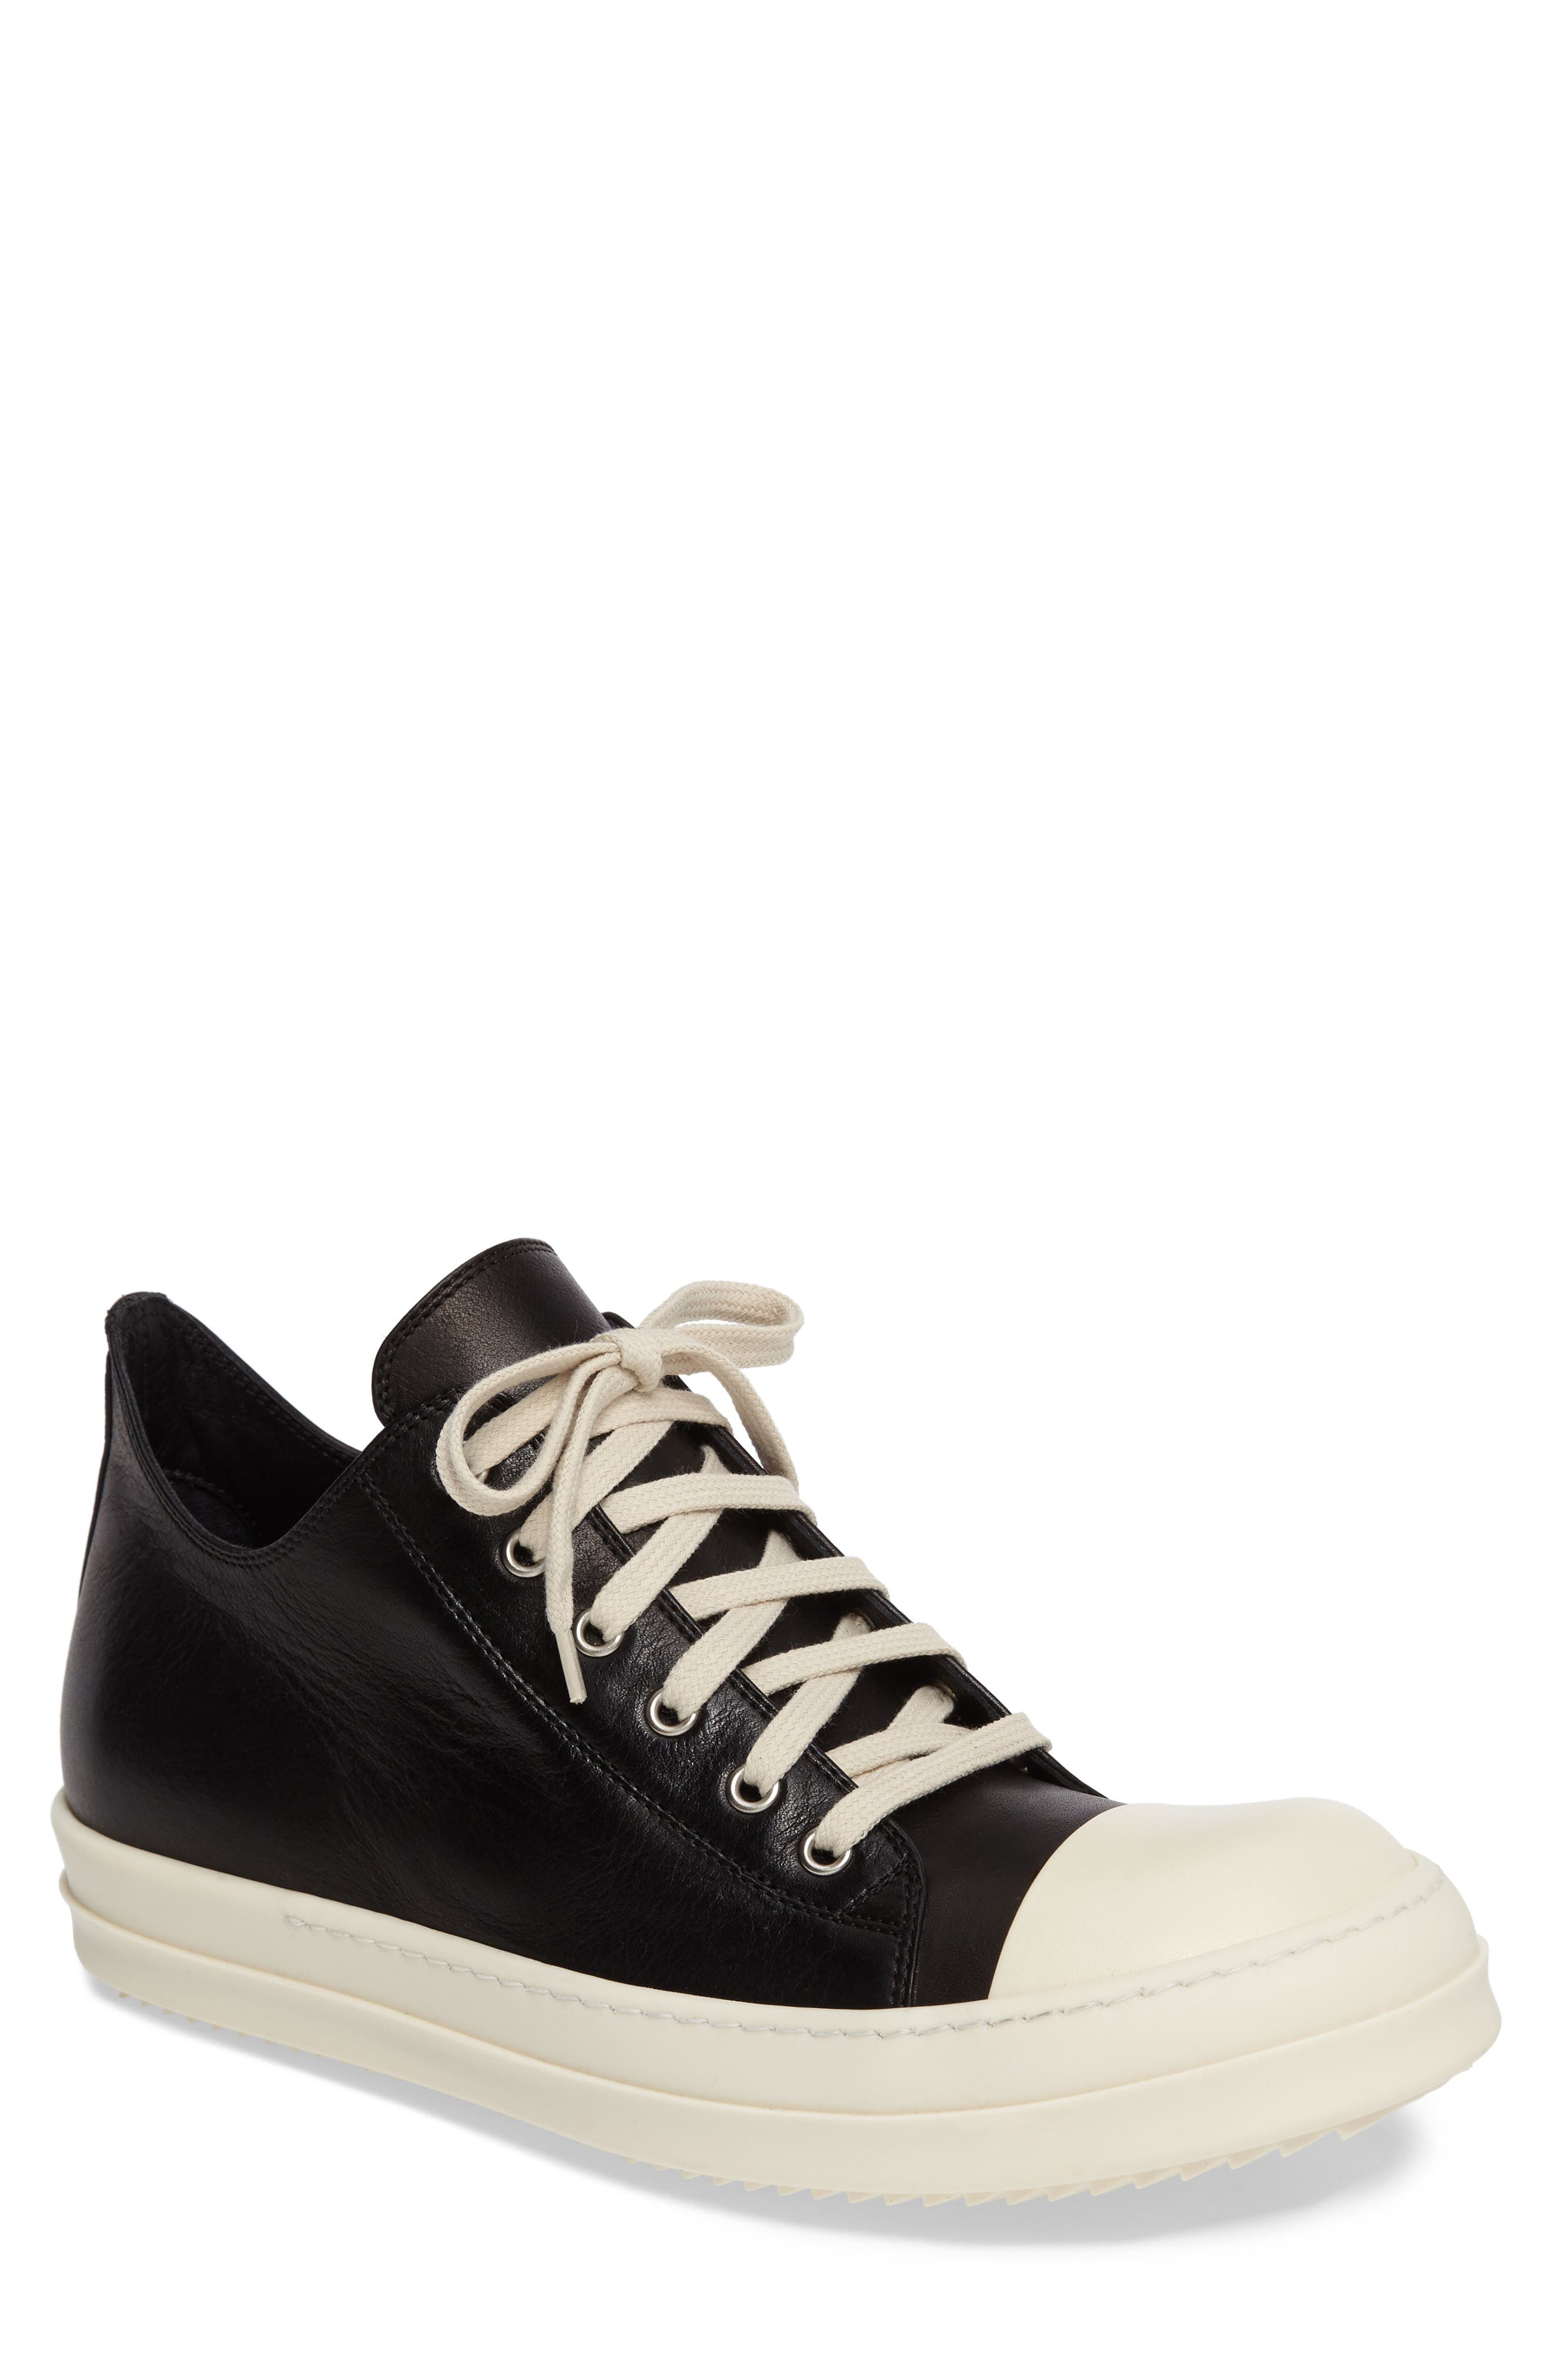 Rick Owens Low Top Sneaker (Men)